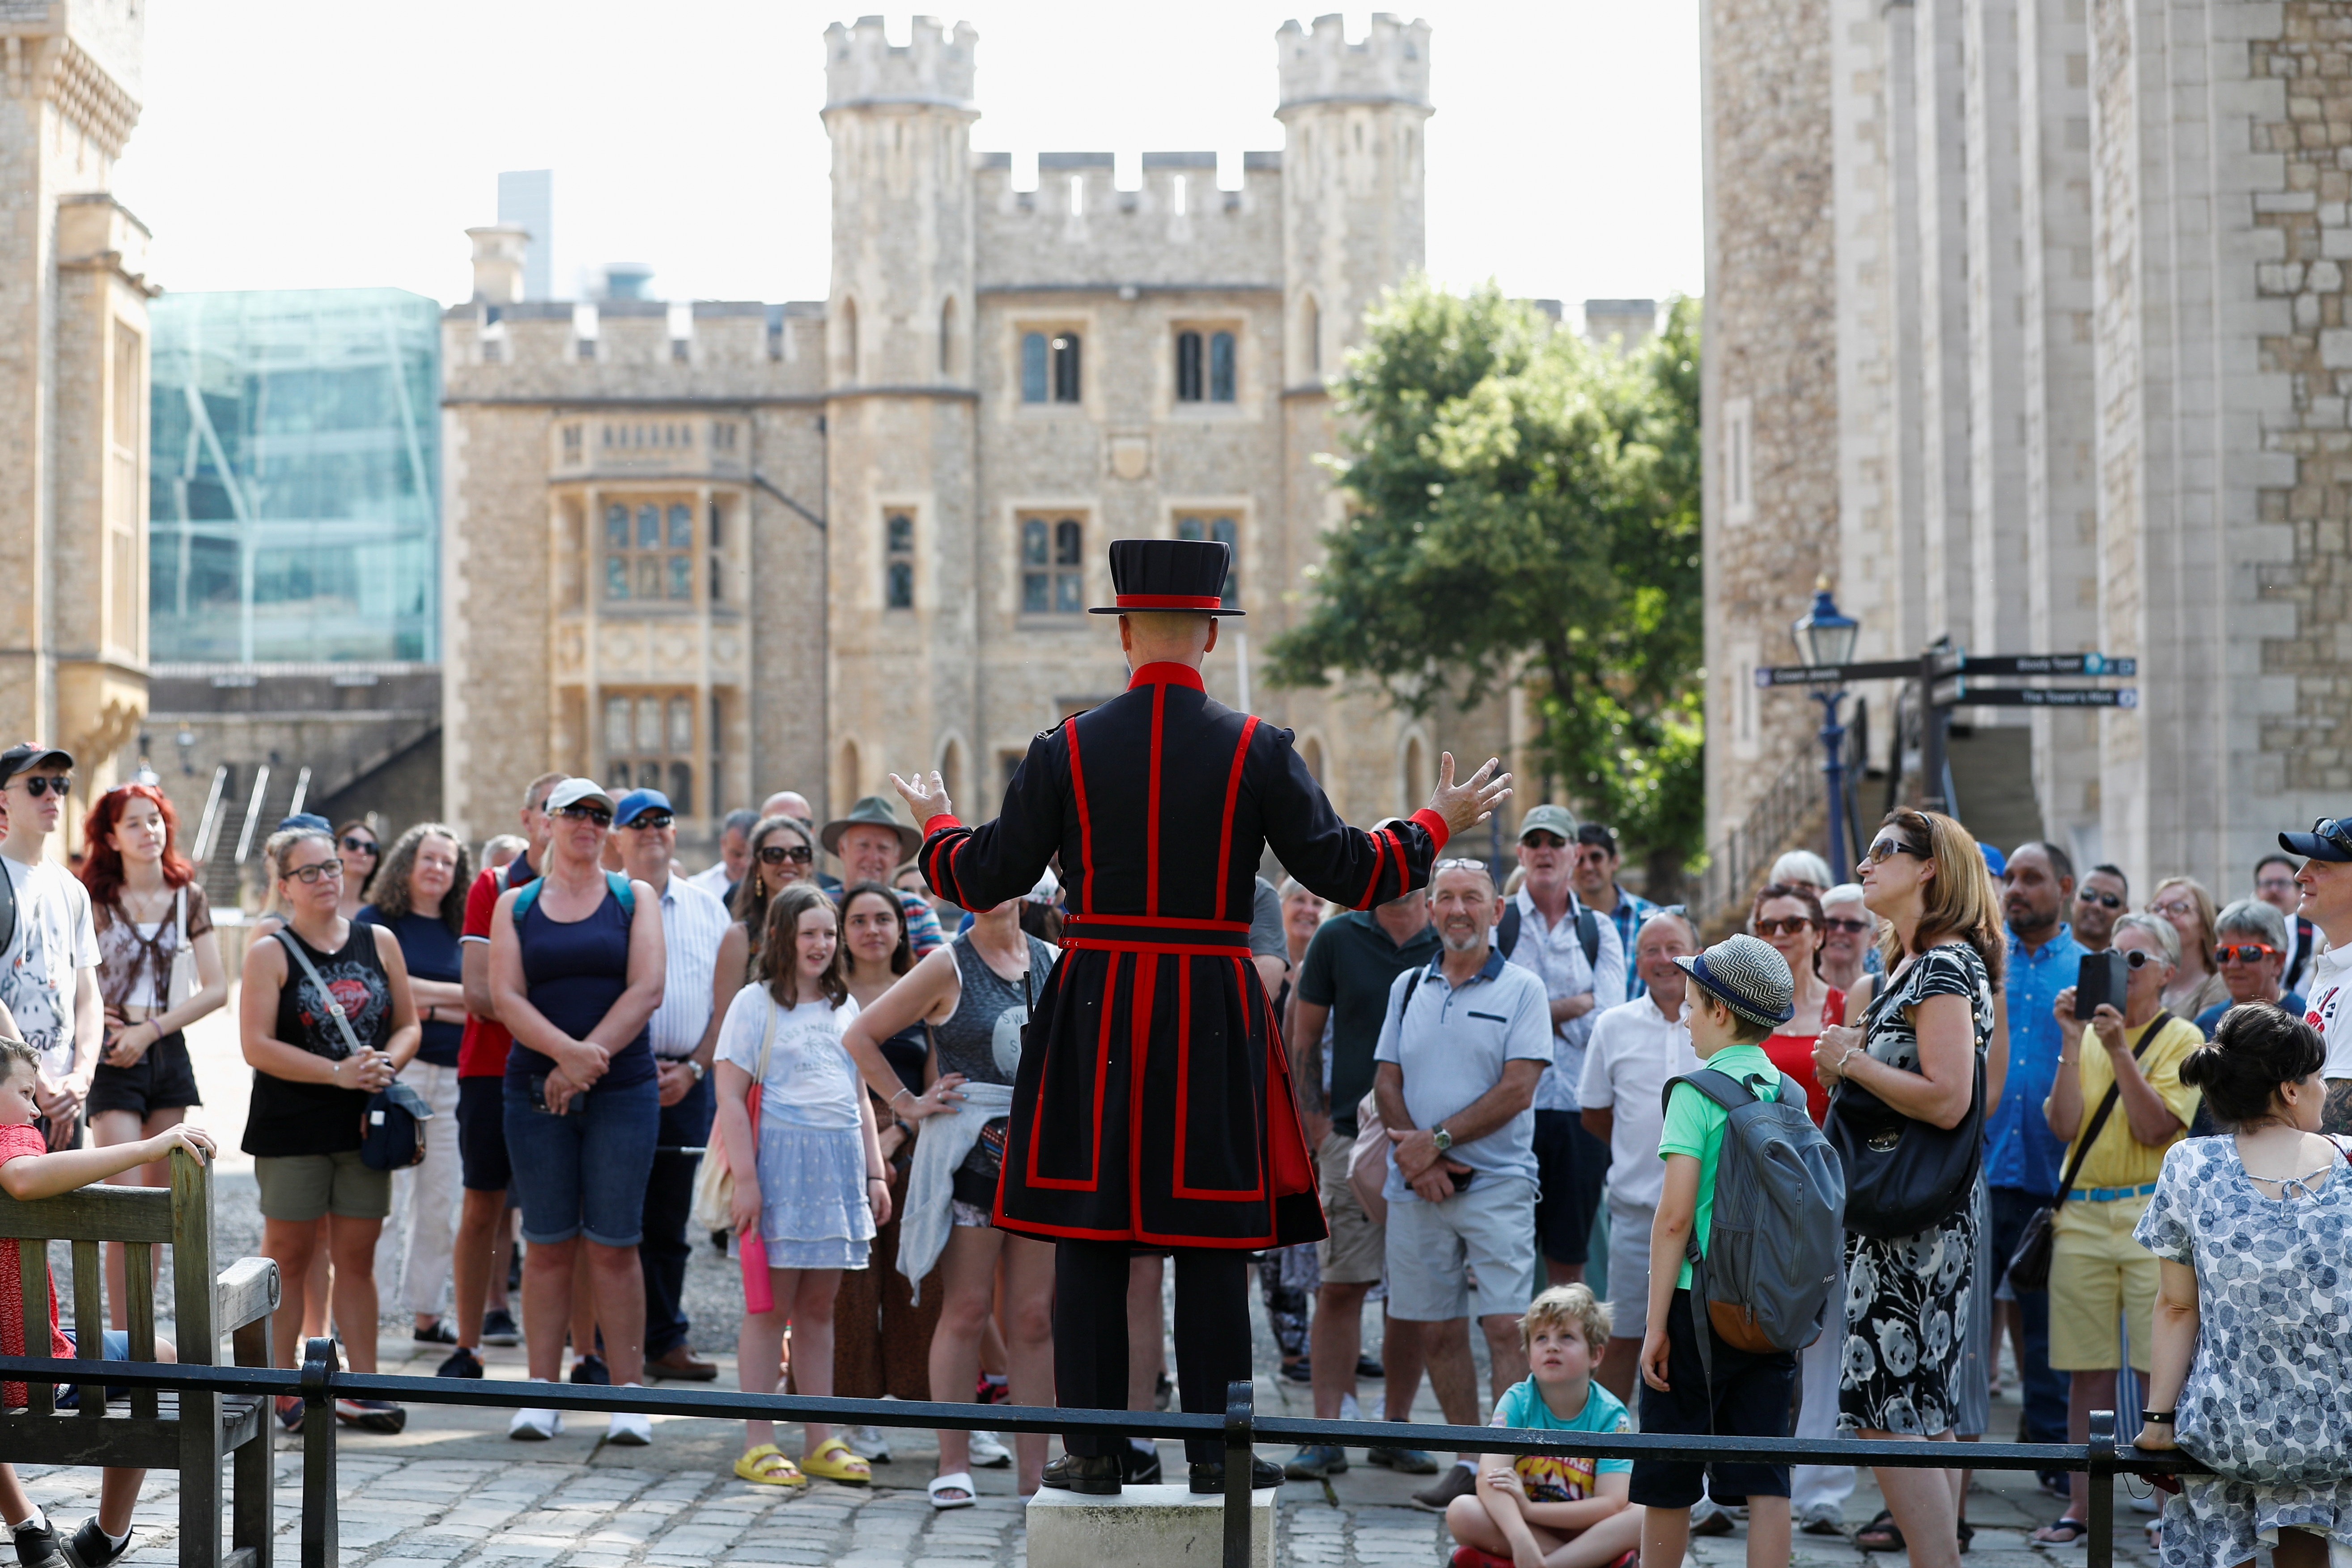 A Yeoman Warder, Barney Chandler speaks to the group, as he leads the first